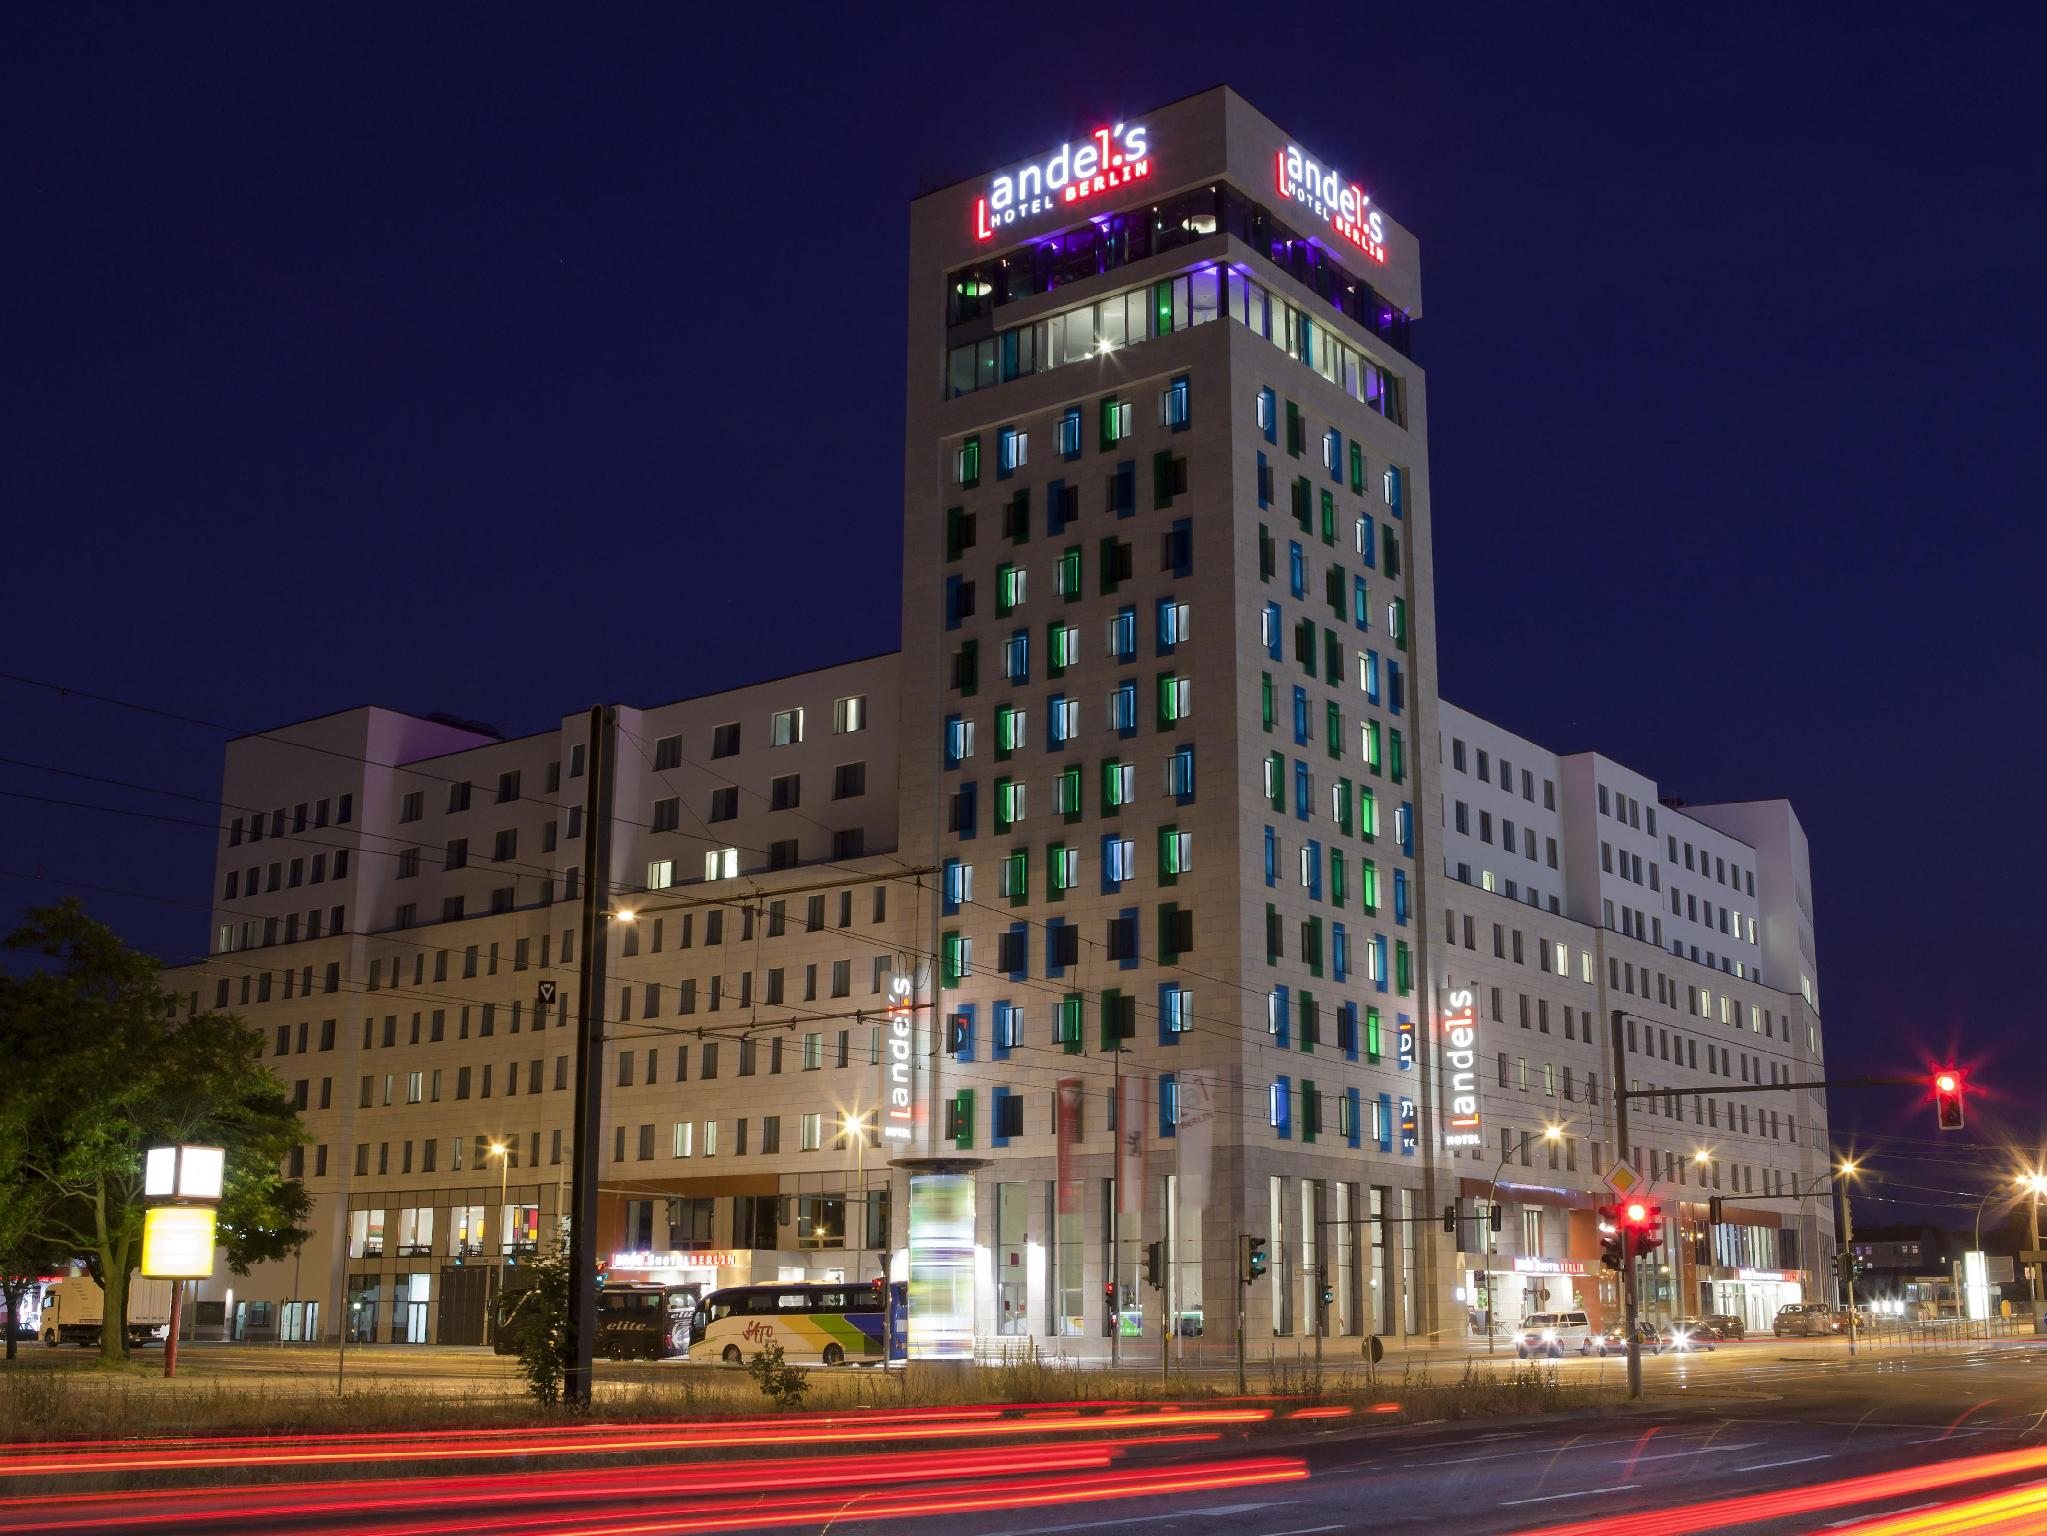 andel's Hotel Berlin, managed by Vienna International Hotels and Resorts เบอร์ลิน